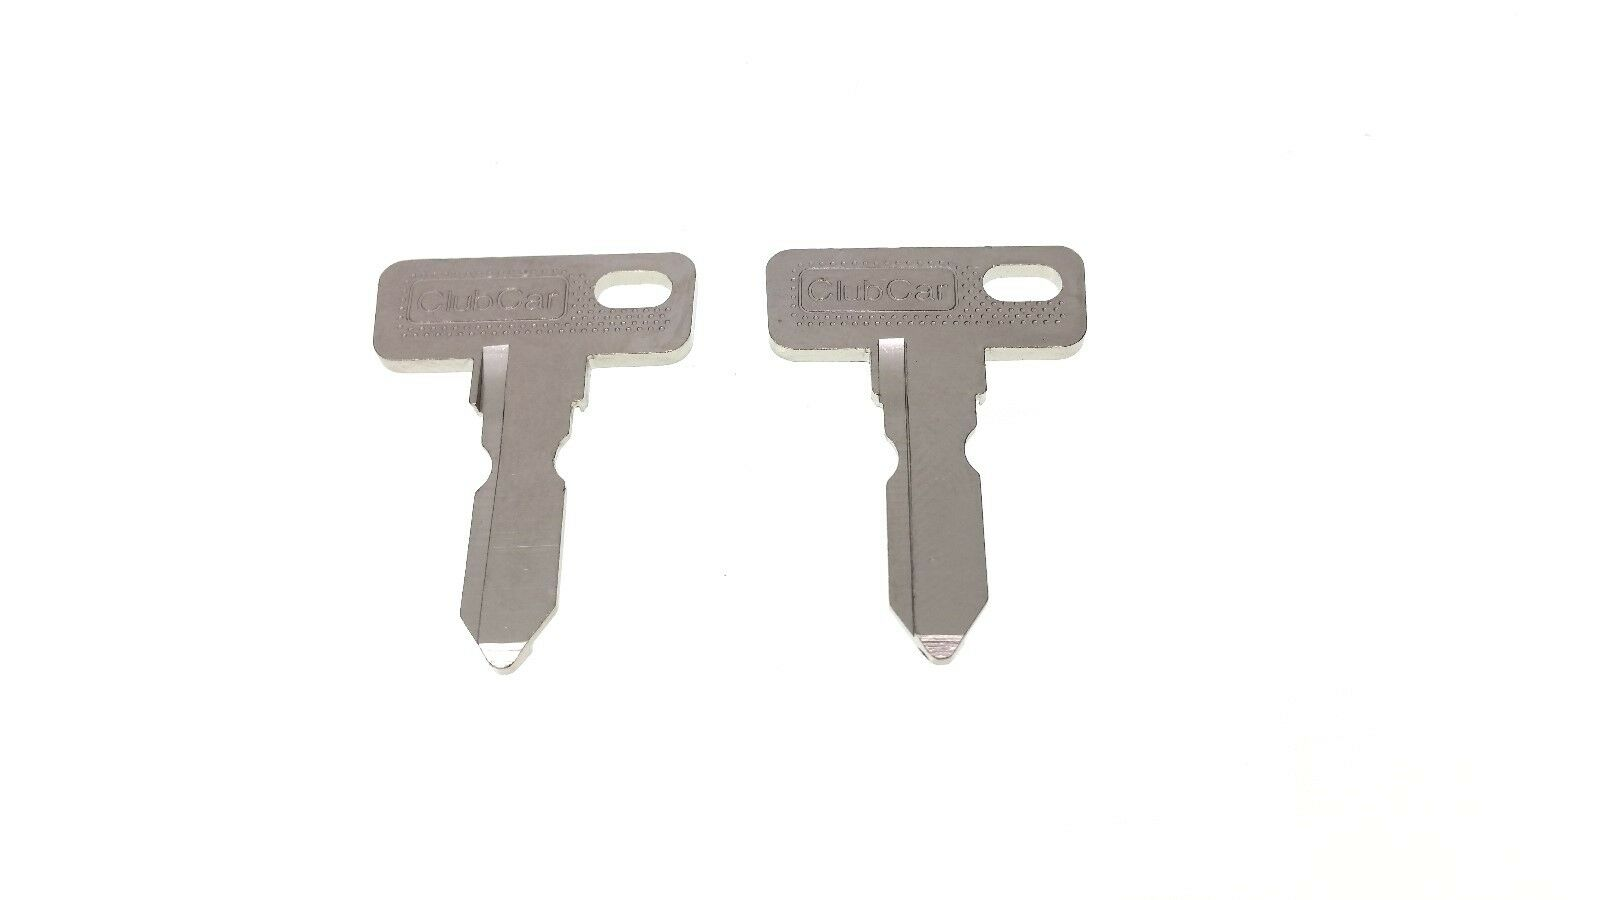 Club Car Golf Cart Key(s) Replacement 1984 to current. 2 Keys